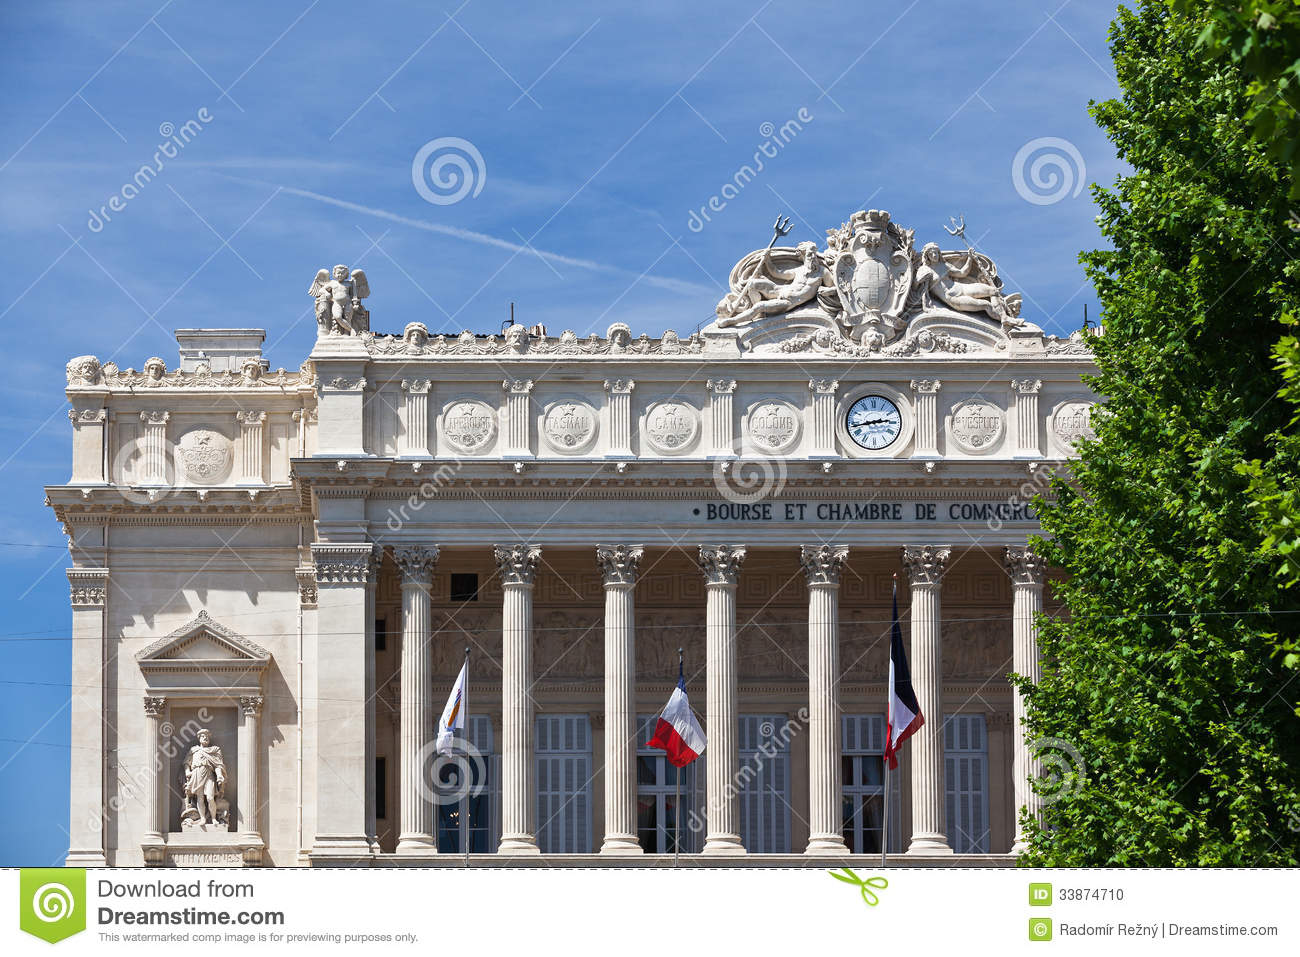 Bourse et chambre de commerce in marseille stock photo for Chambre commerce france